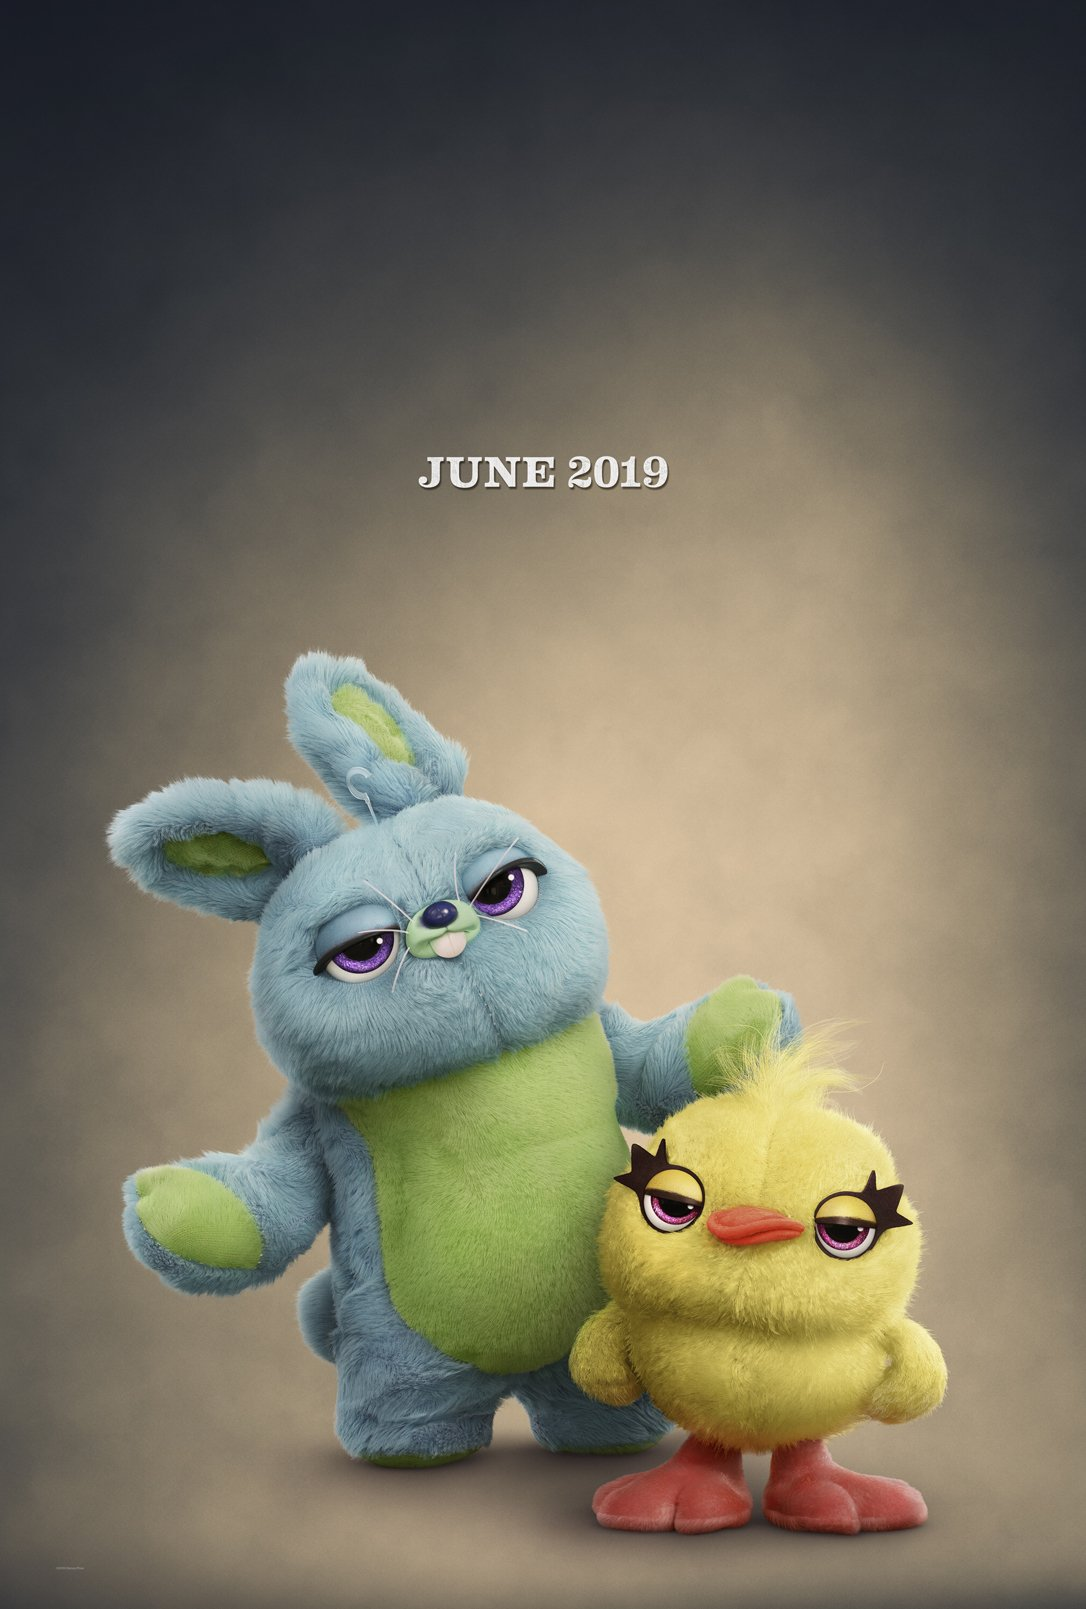 u0026quot toy story 4 u0026quot  posters  video introduce new toys ducky and